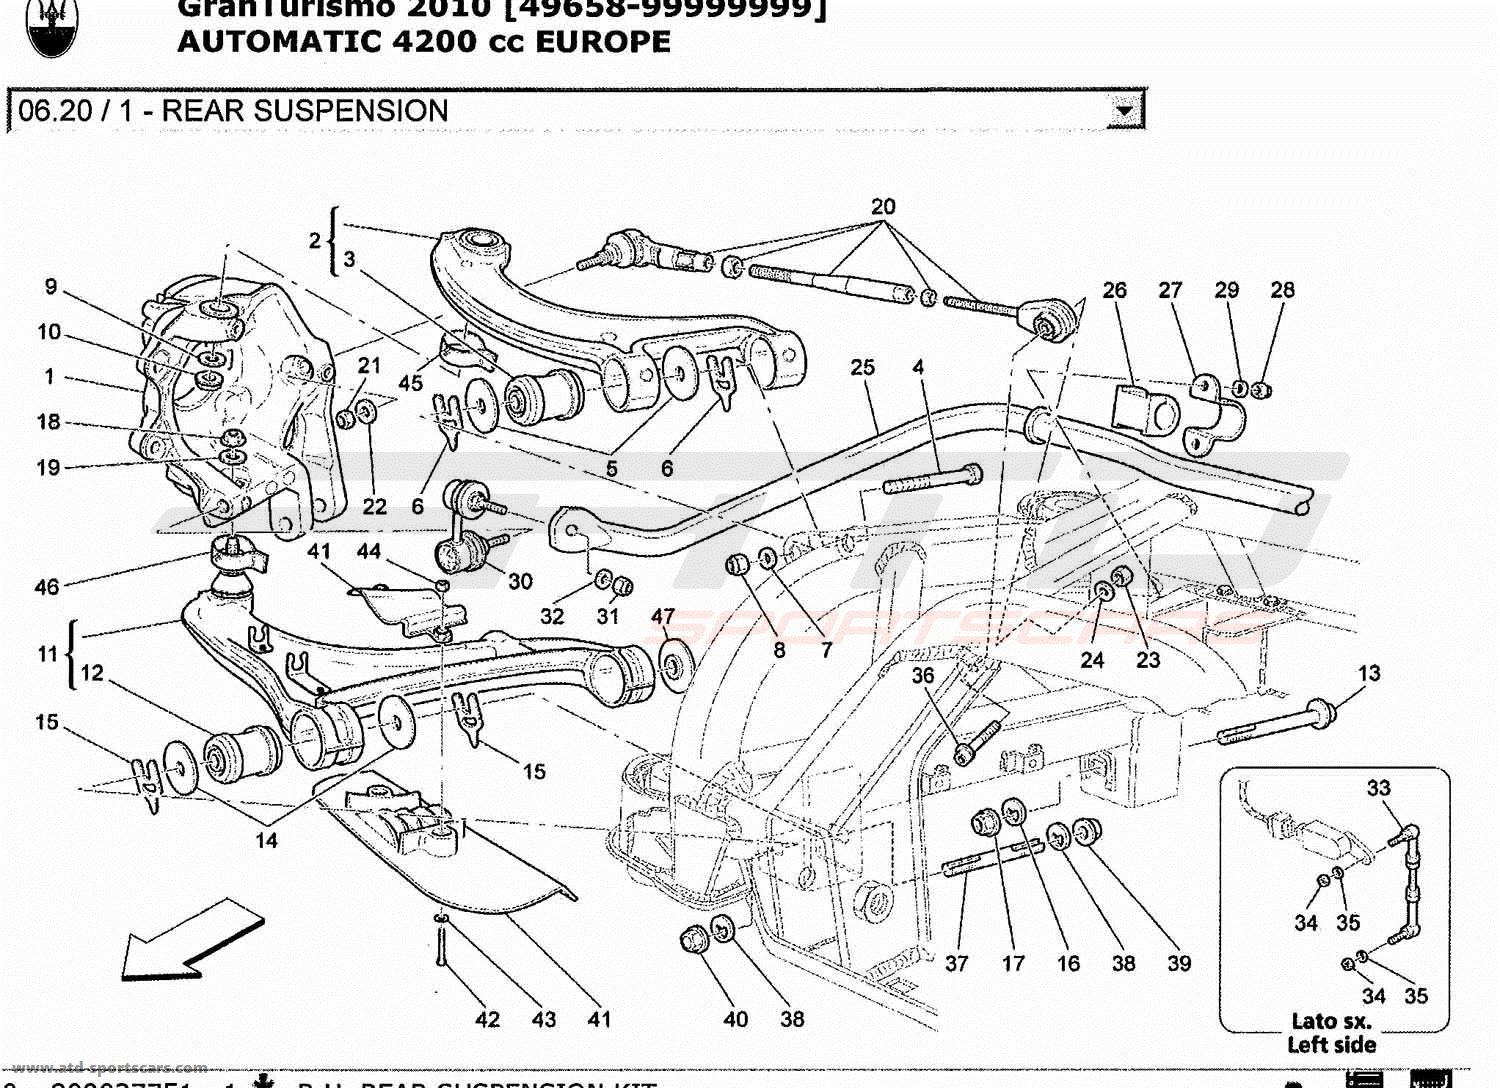 Diagram For 2003 Ford Taurus further 7osz8 Trying Electrical Diagram 1986 D 21 Nissan together with Kia Sportage Camshaft Position Sensor Location also Car Undercarriage Parts Diagram furthermore 2009 Pontiac G6 Engine Diagram. on 2013 nissan sentra vin